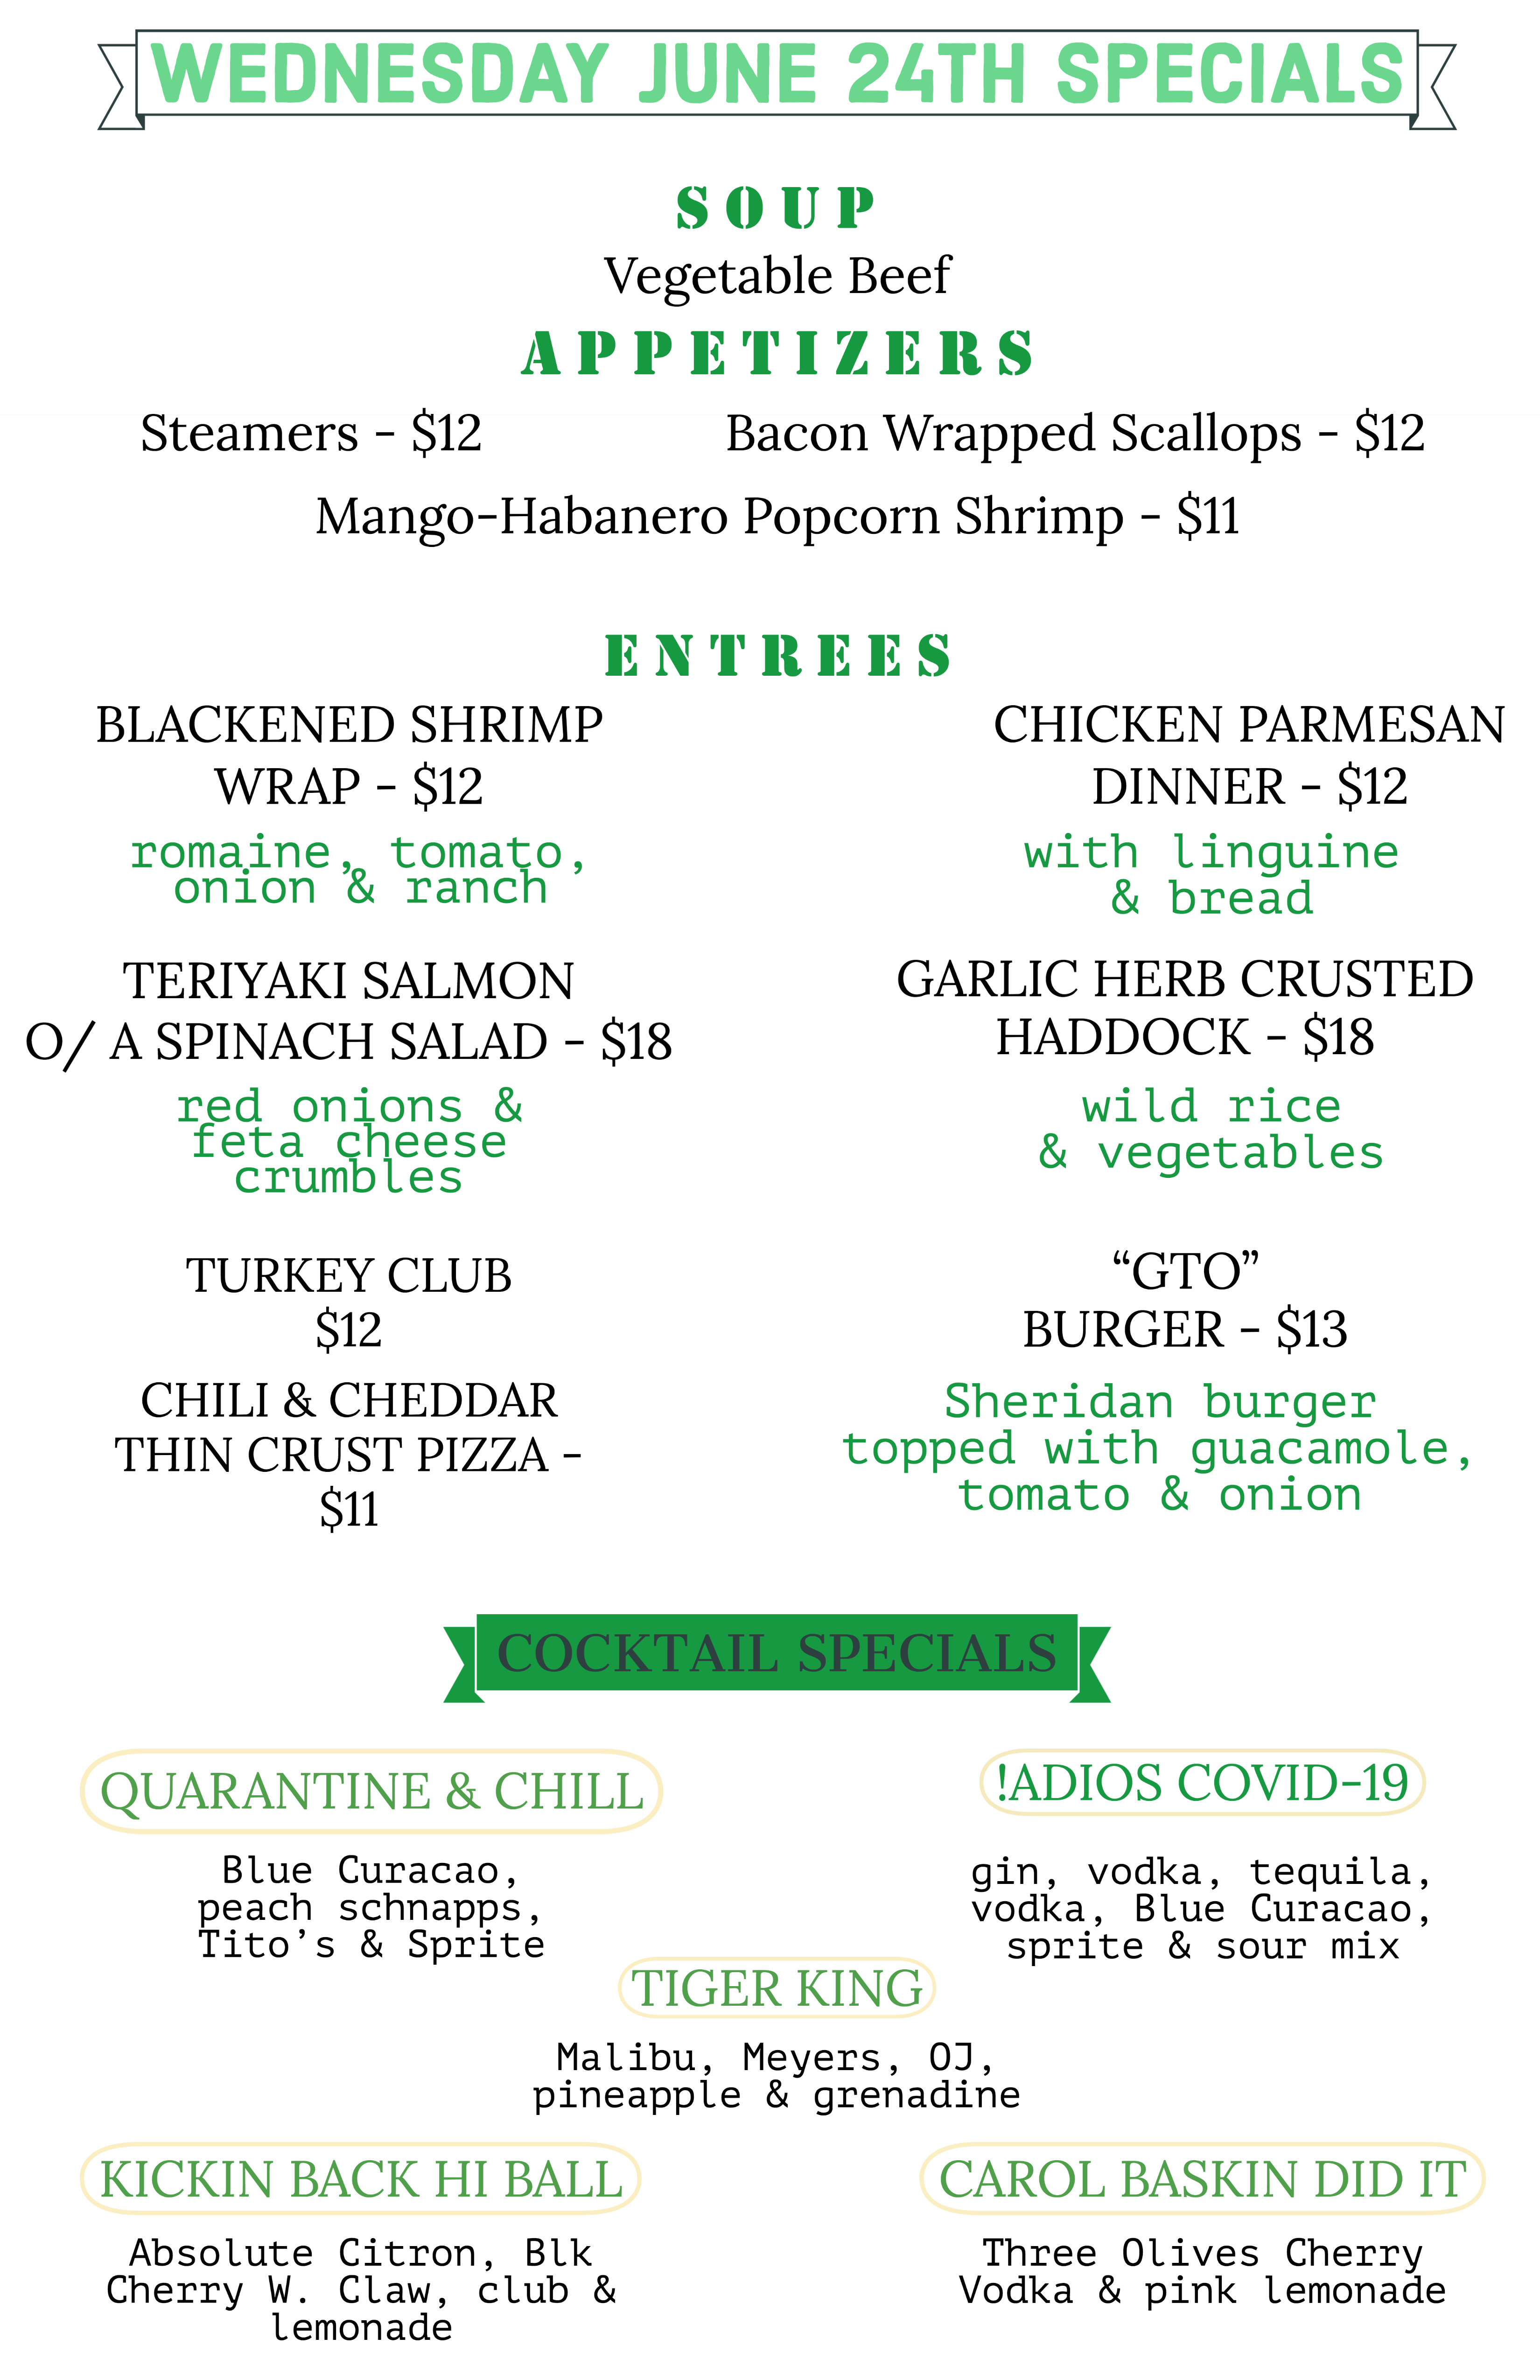 Wednesday June 24th Specials